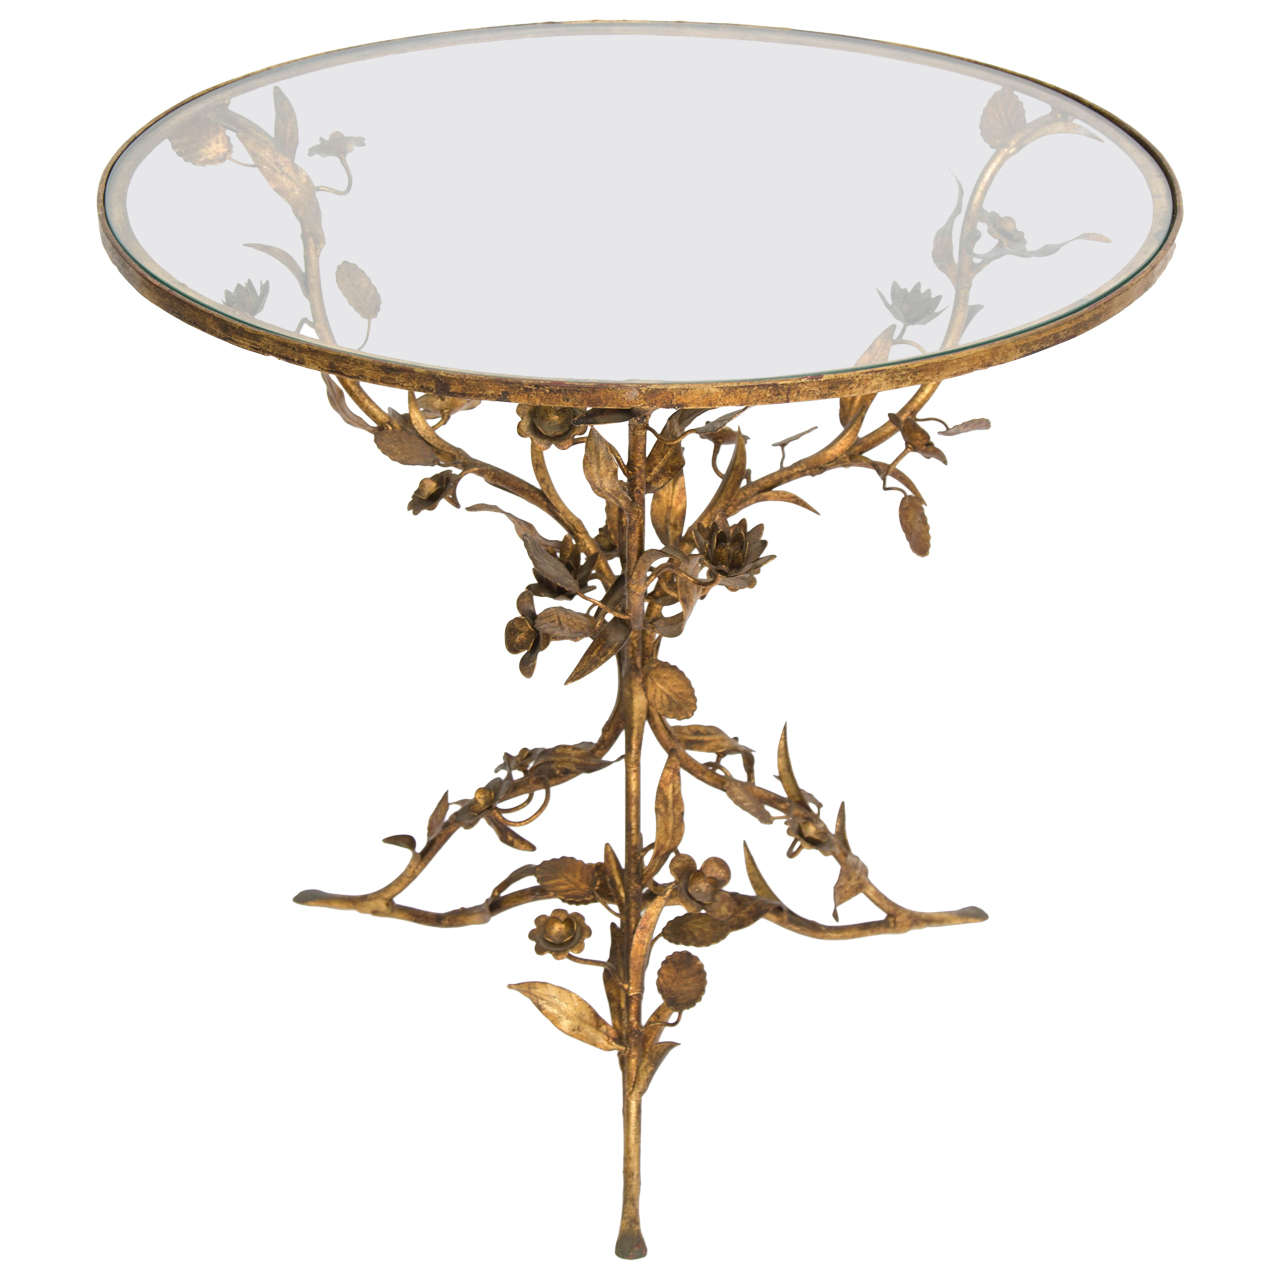 Decorative metal and glass side table at 1stdibs for Side tables as coffee table